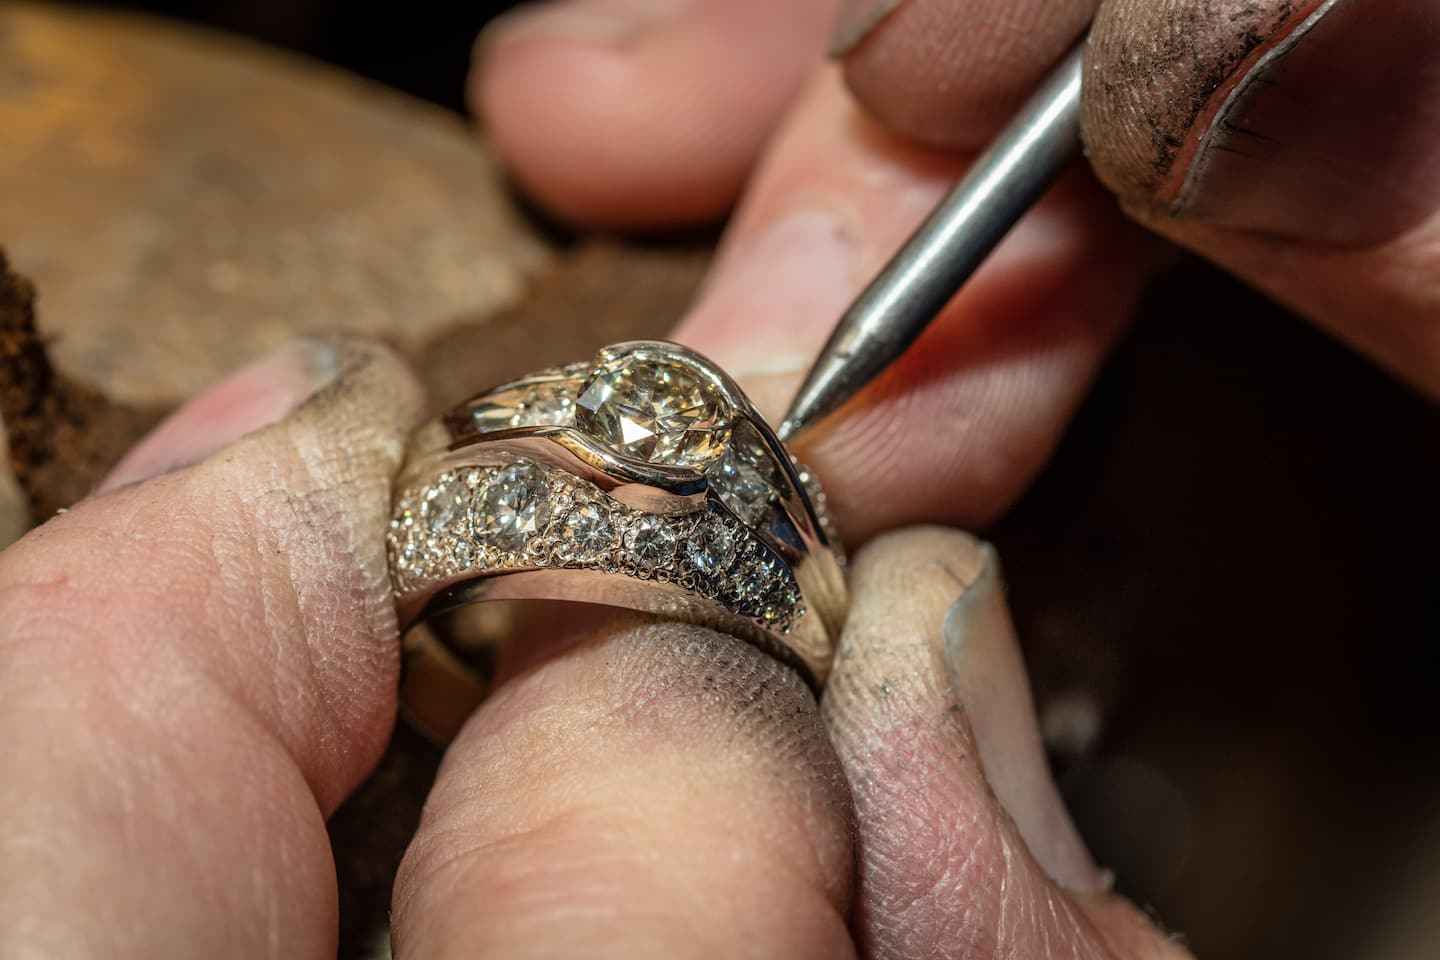 dirty work fingers thumb appraising ring jewelry with tool black dirt and diamond in gold - How Do Wedding Rings Work